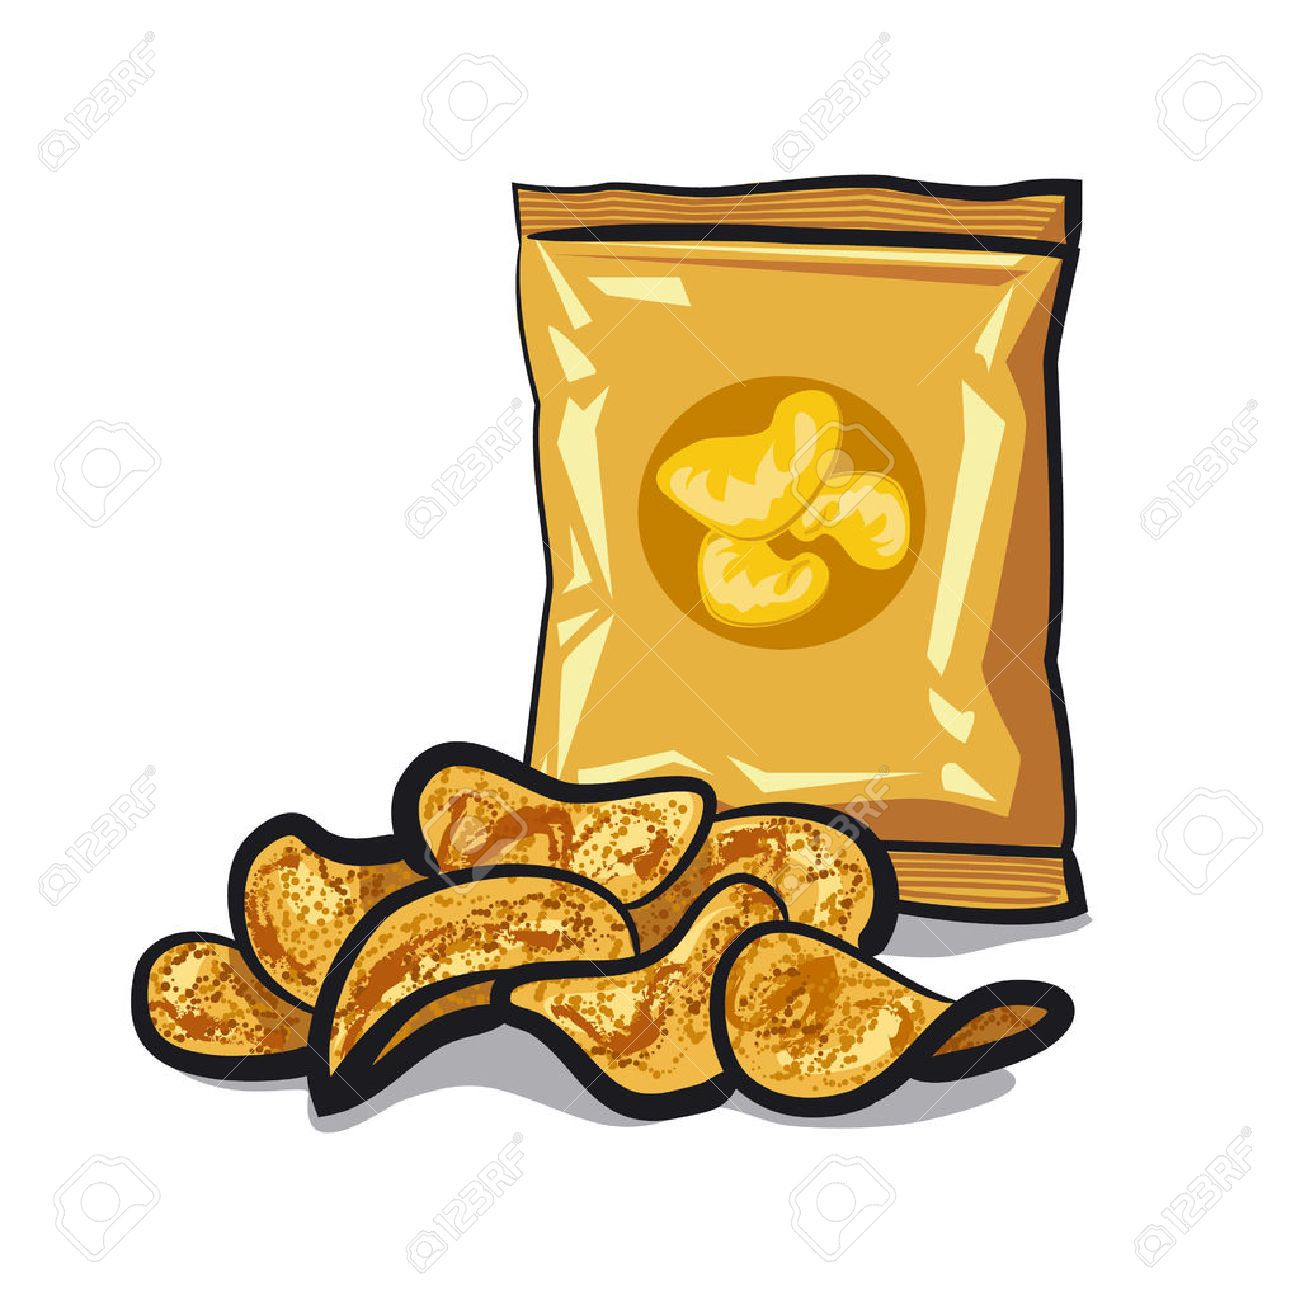 Image result for chips clipart | Card art, Potato chips, Chips